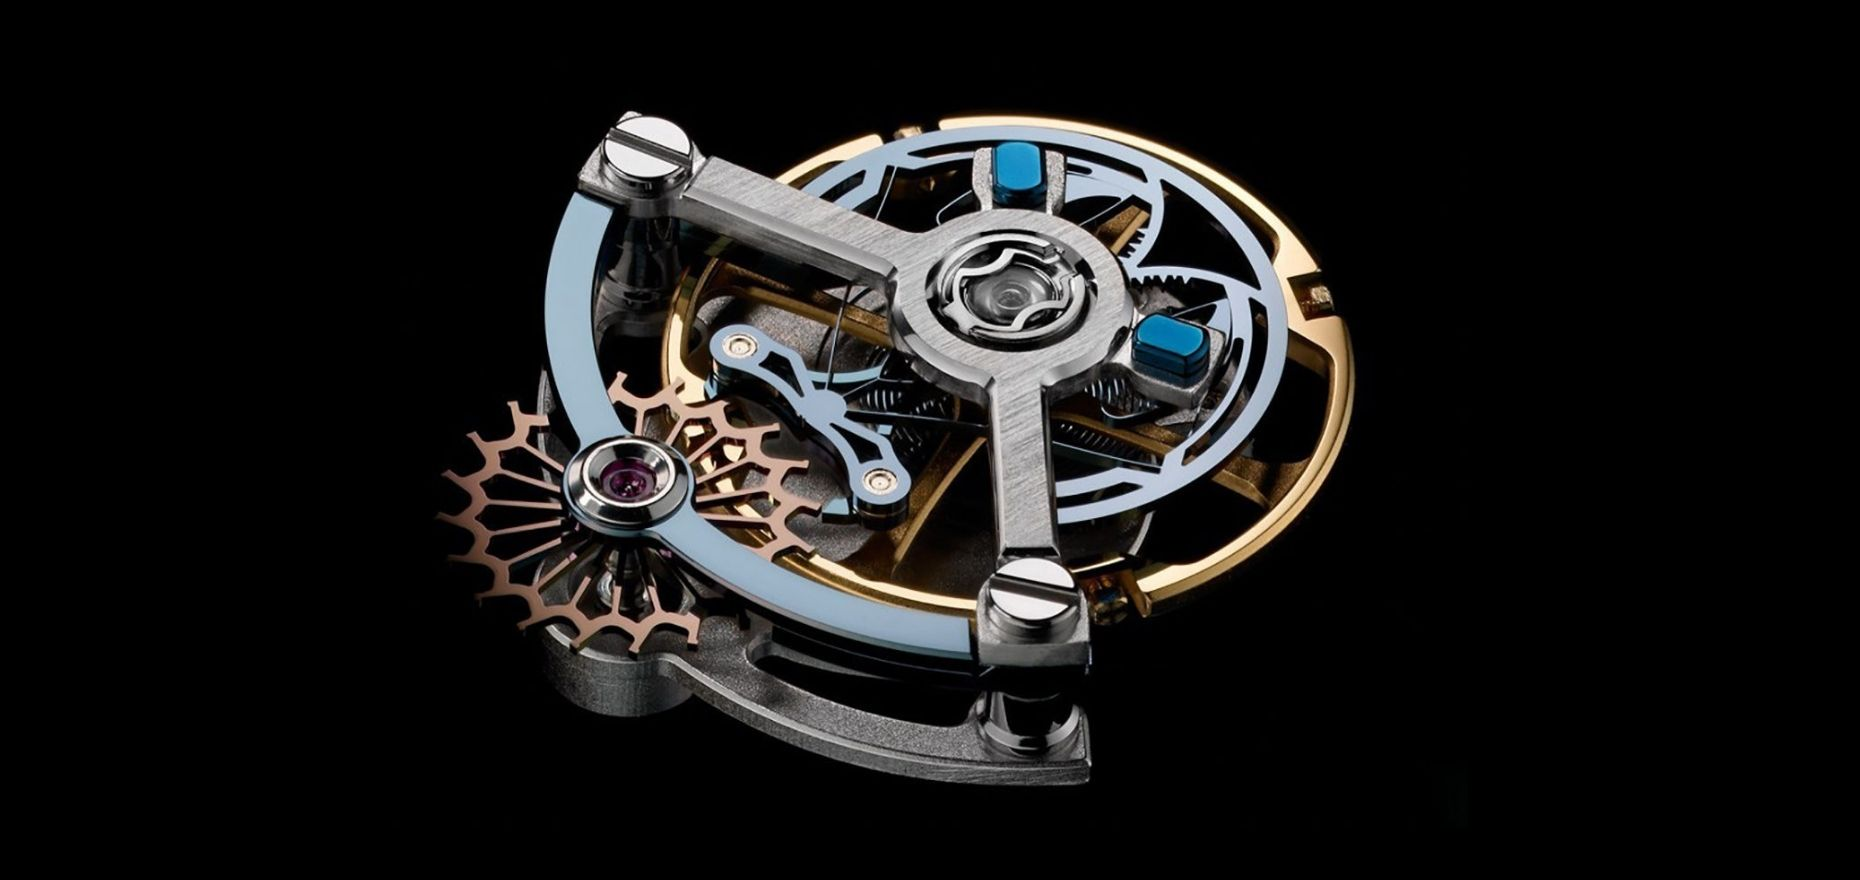 Affordable Luxury Watches With Silicon Components